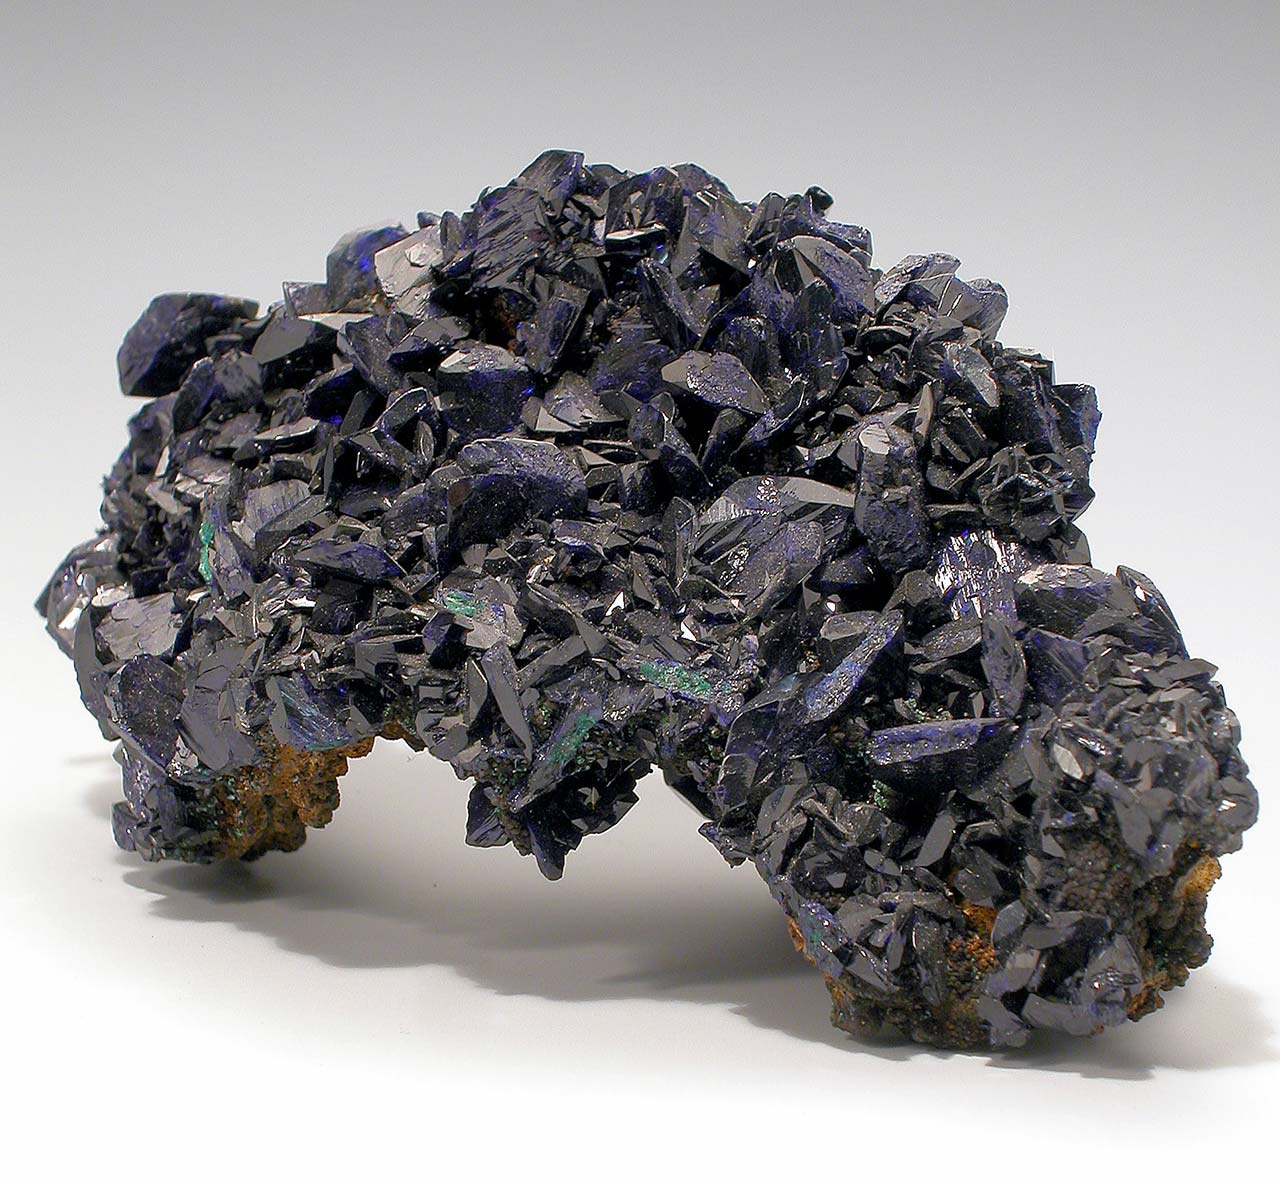 Azurite sample from the natural history collection of Hessisches Landesmuseum Darmstadt.